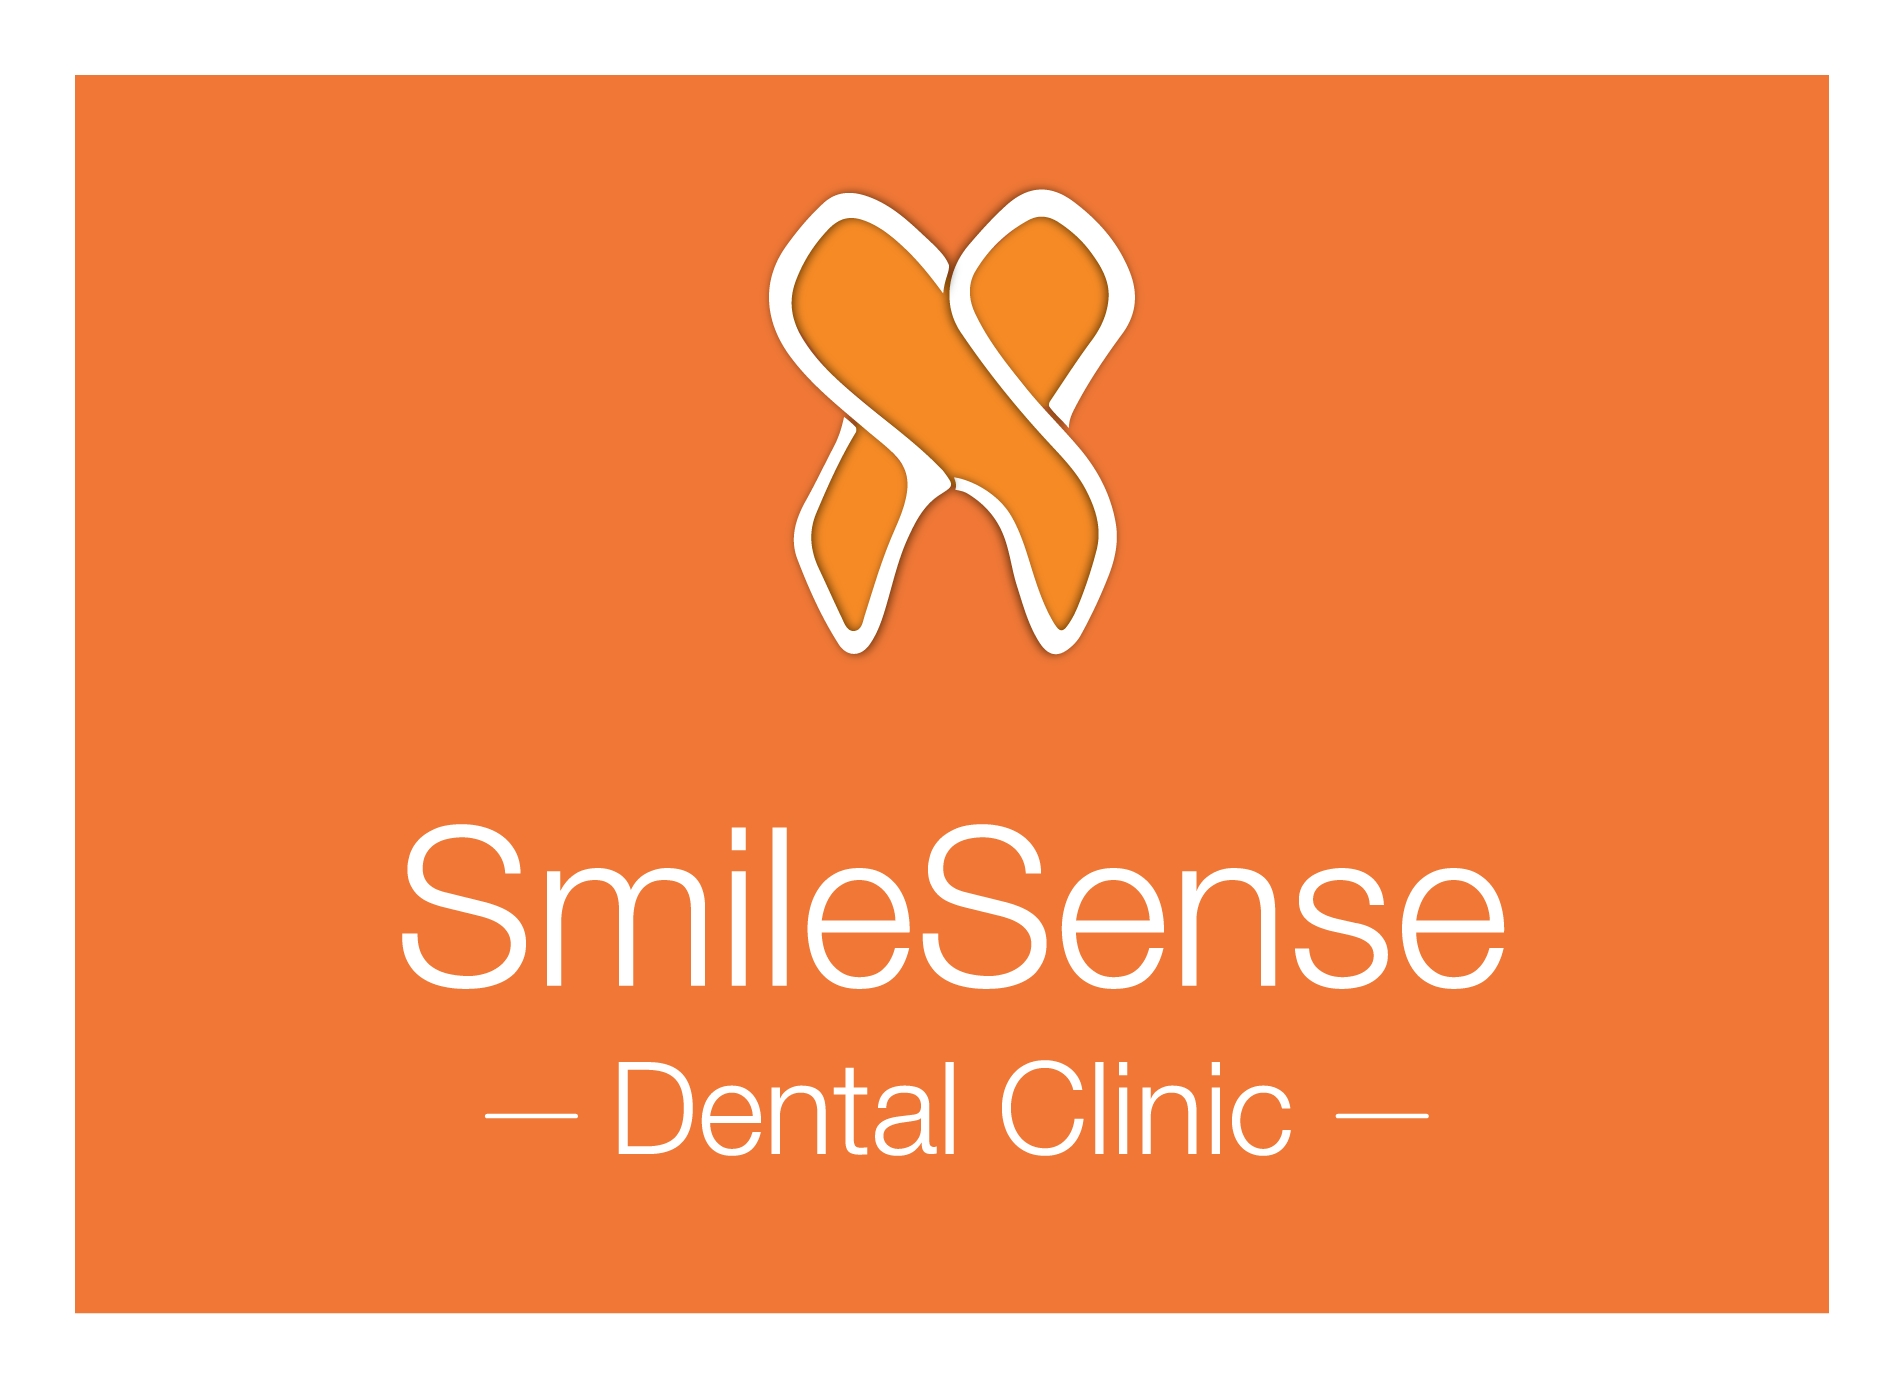 Smilesense Dental Clinic